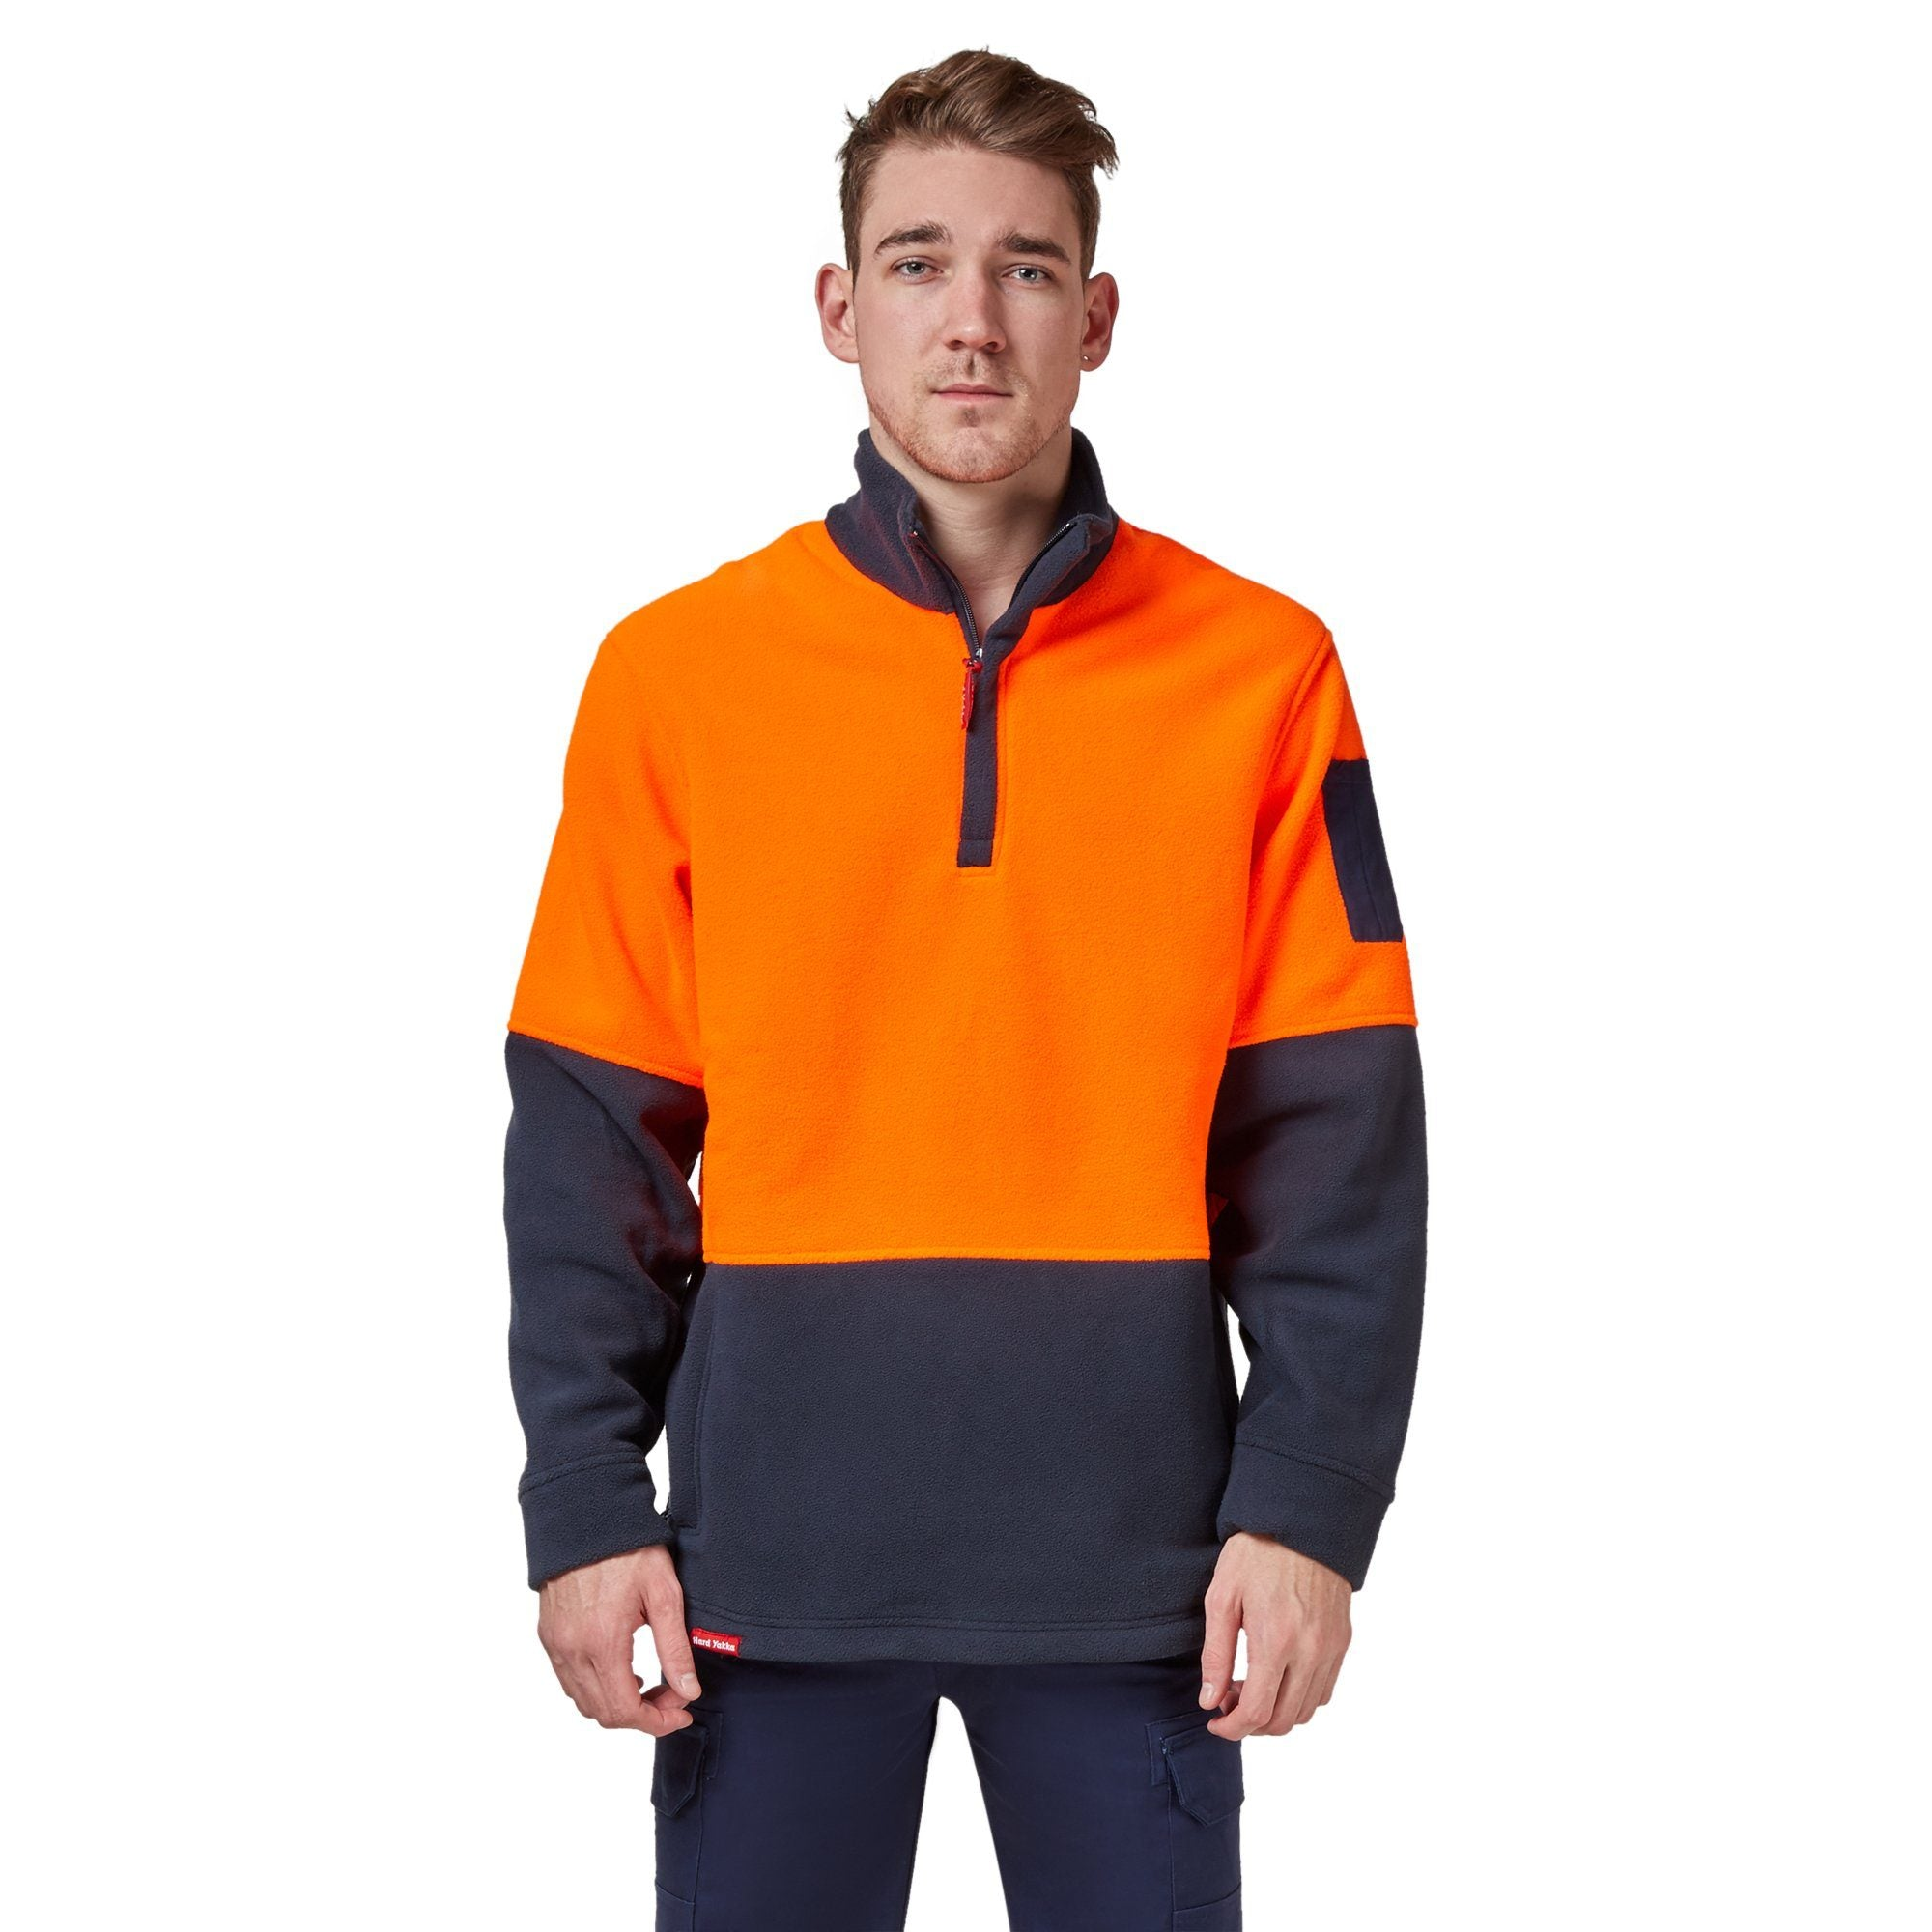 Hard Yakka Y19314-Hi-Vis Two Tone Polar Fleece ¼ Zip Jumper - Orange/Navy Workwear Isbister & Co Wholesale